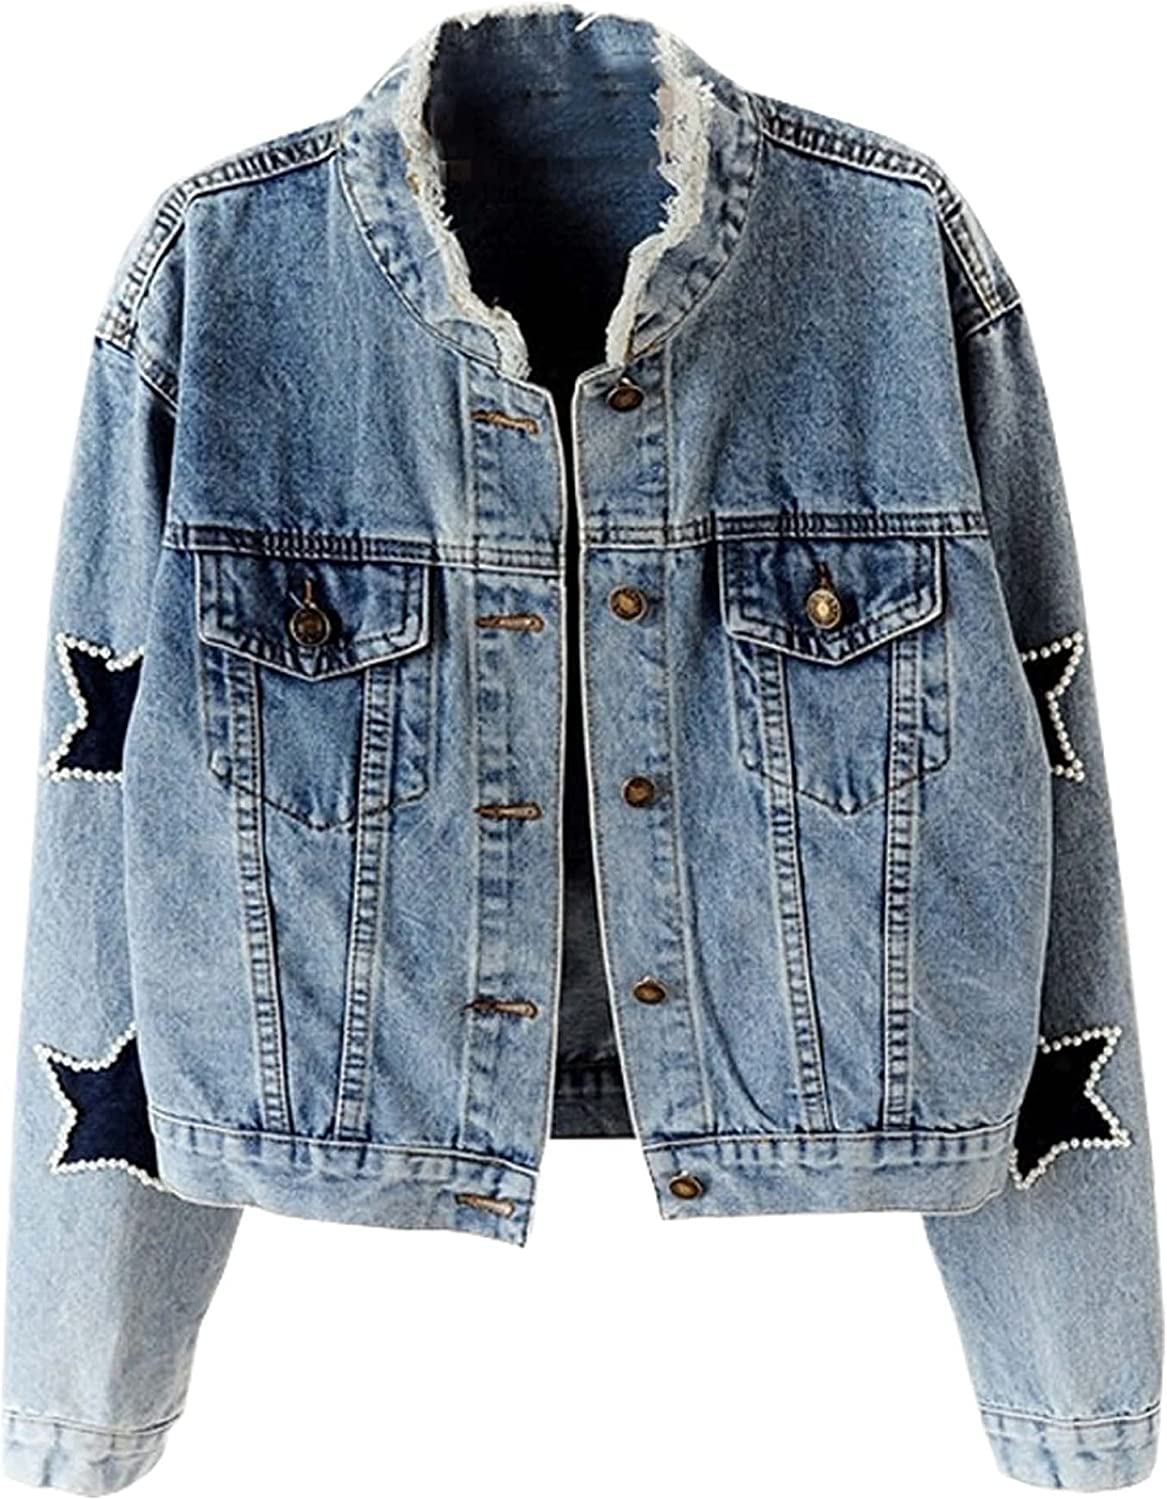 Hixiaohe Women's Casual Pearls Embroidered Denim Jacket Button Up Frayed Jean Coat